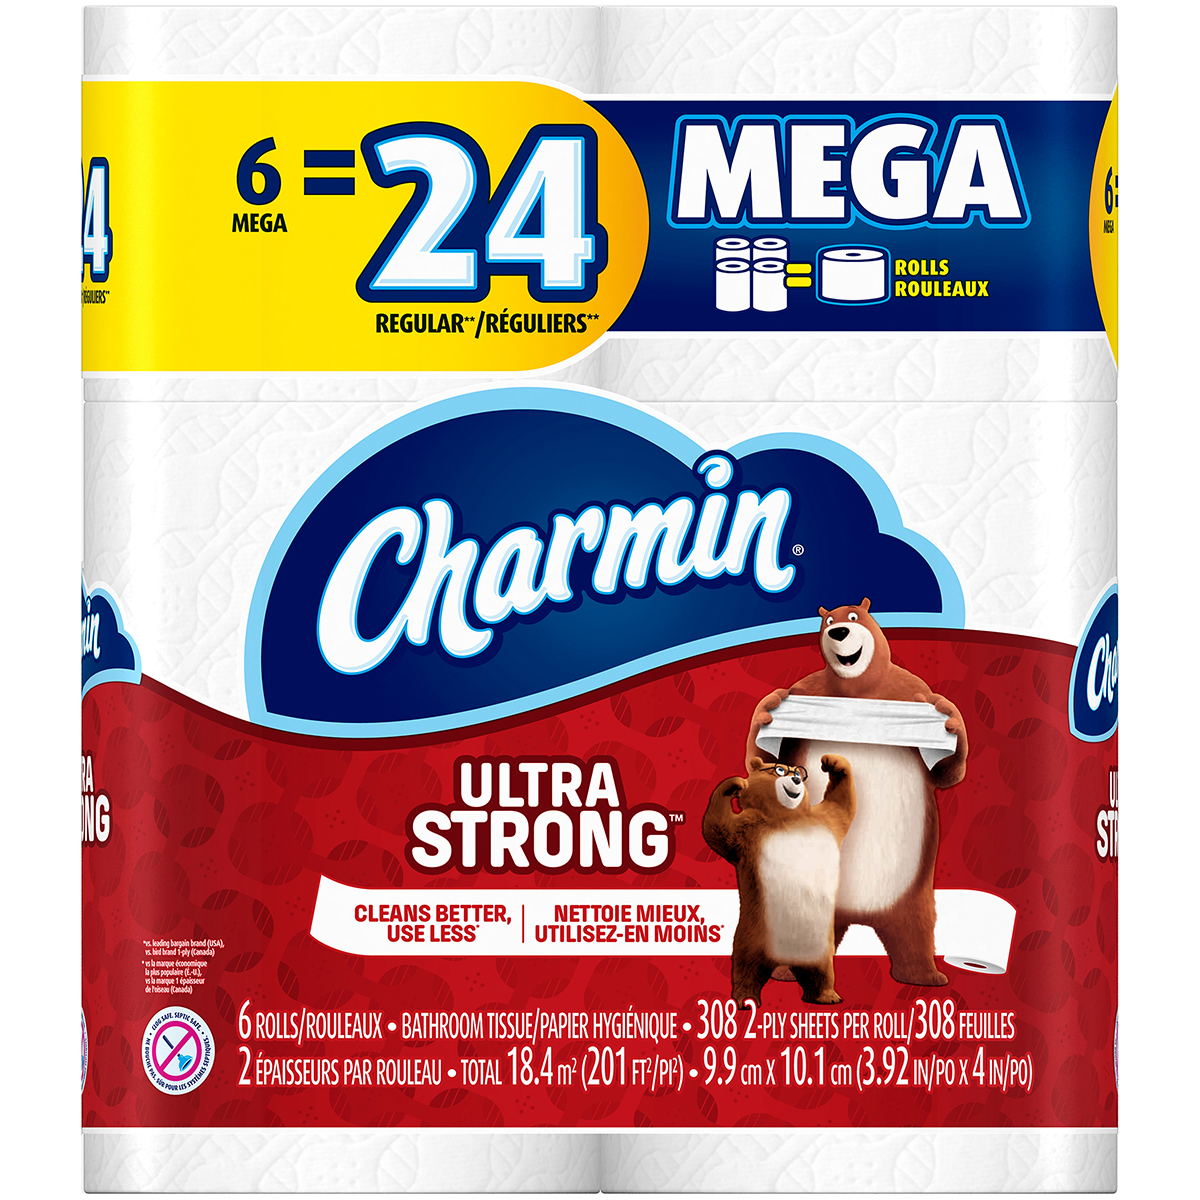 Charmin Ultra Strong Toilet Paper, 6 Mega Rolls by Procter & Gamble